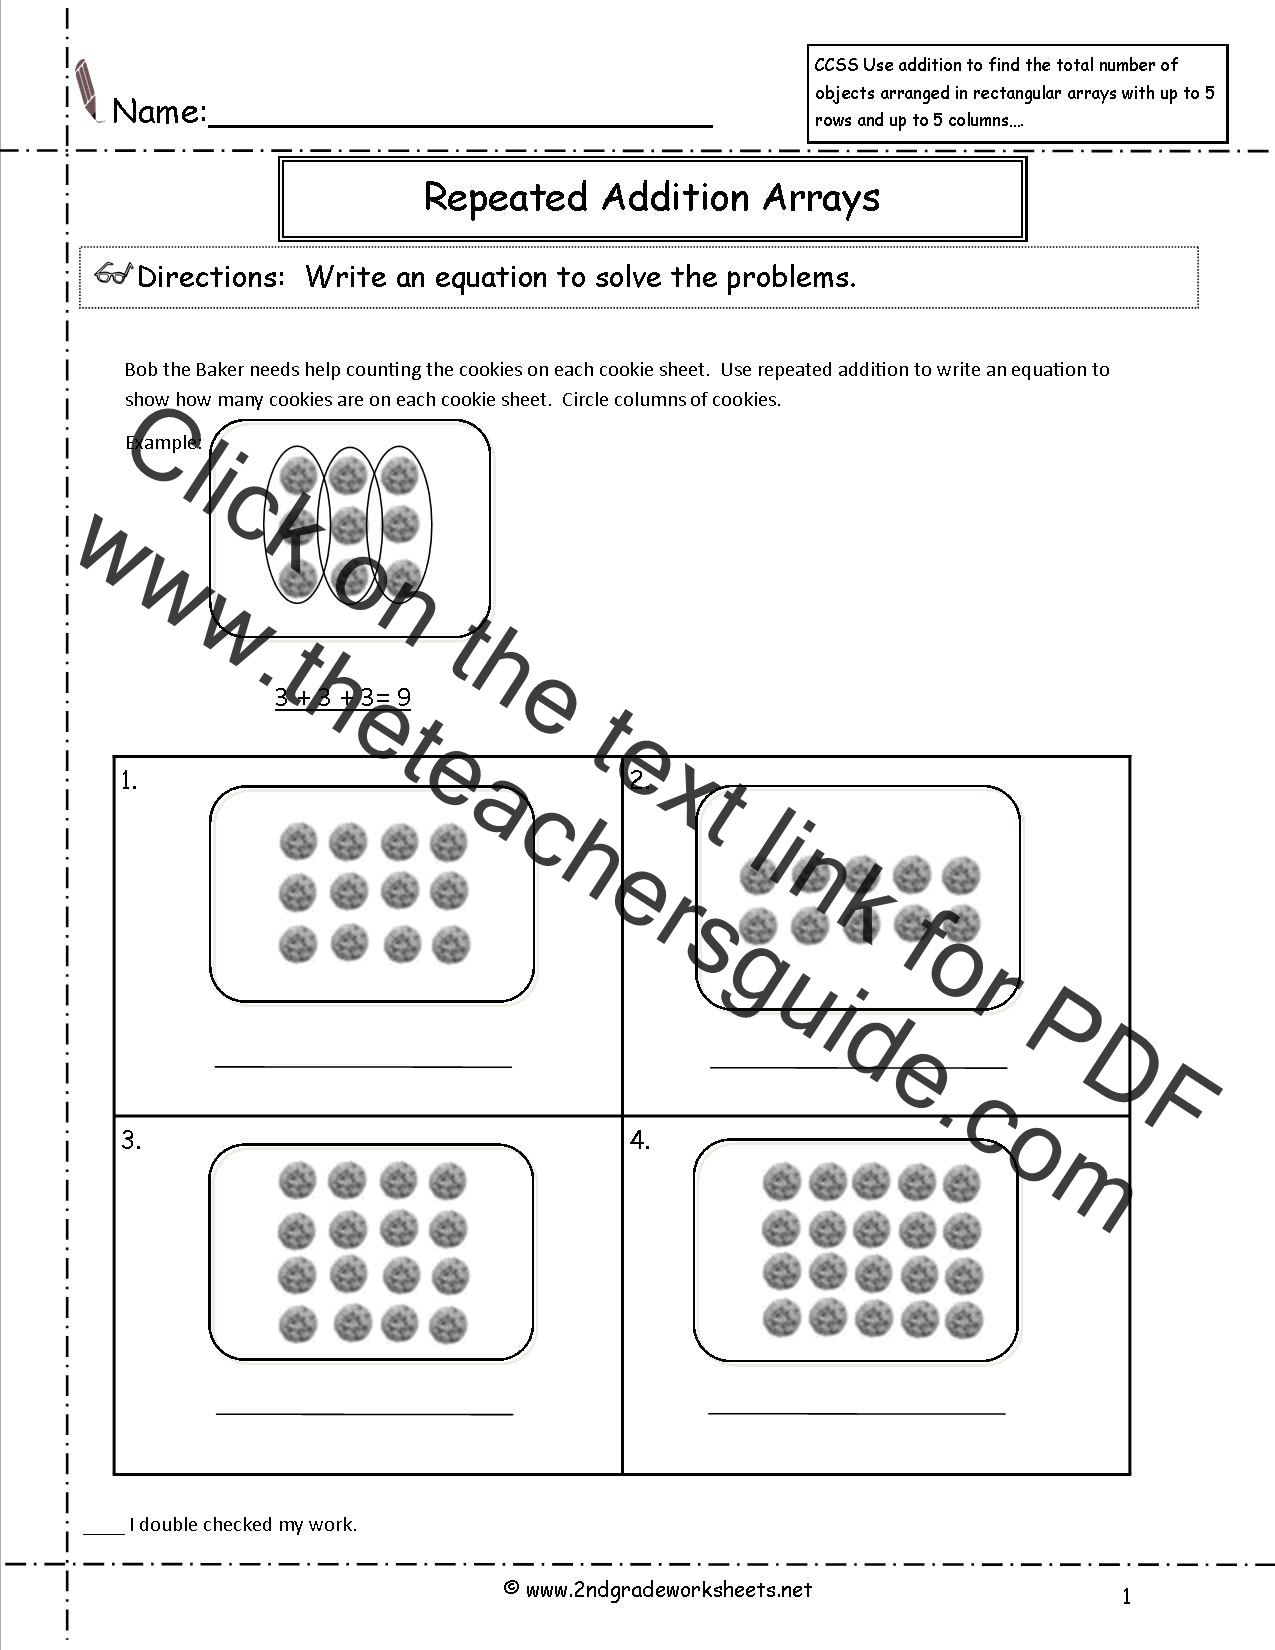 worksheet Writing And Solving Equations Worksheet ccss 2 oa 4 worksheets repeated addition arrays